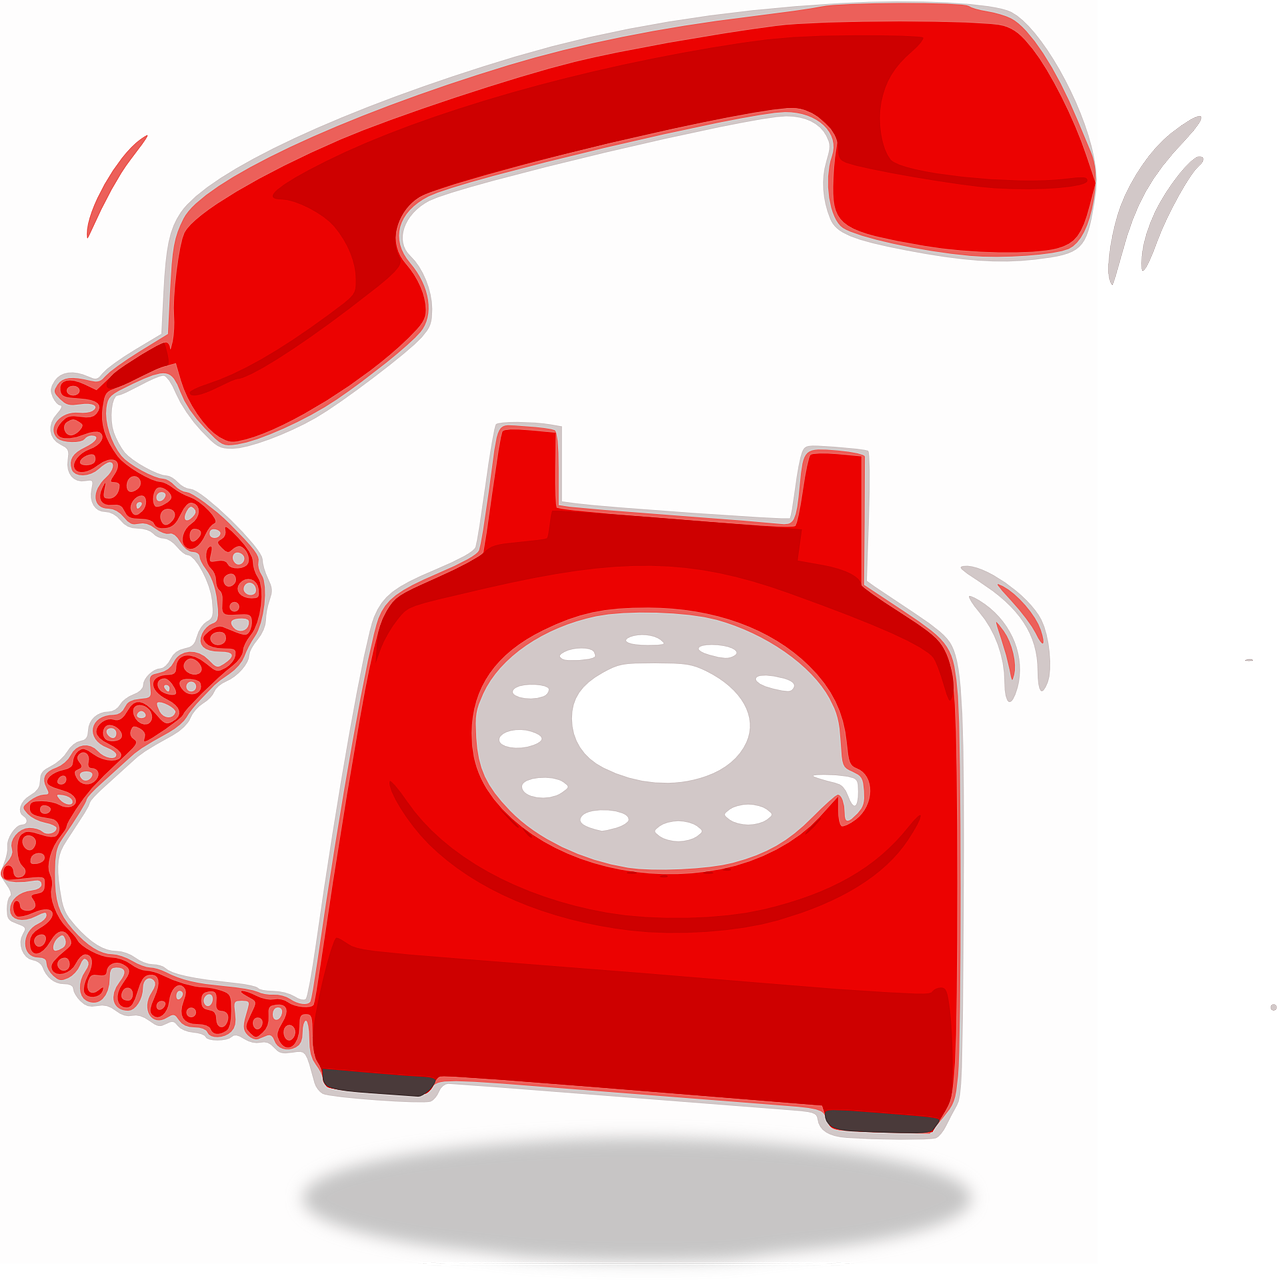 Telephone,phone,old,ringing,red - free image from needpix.com